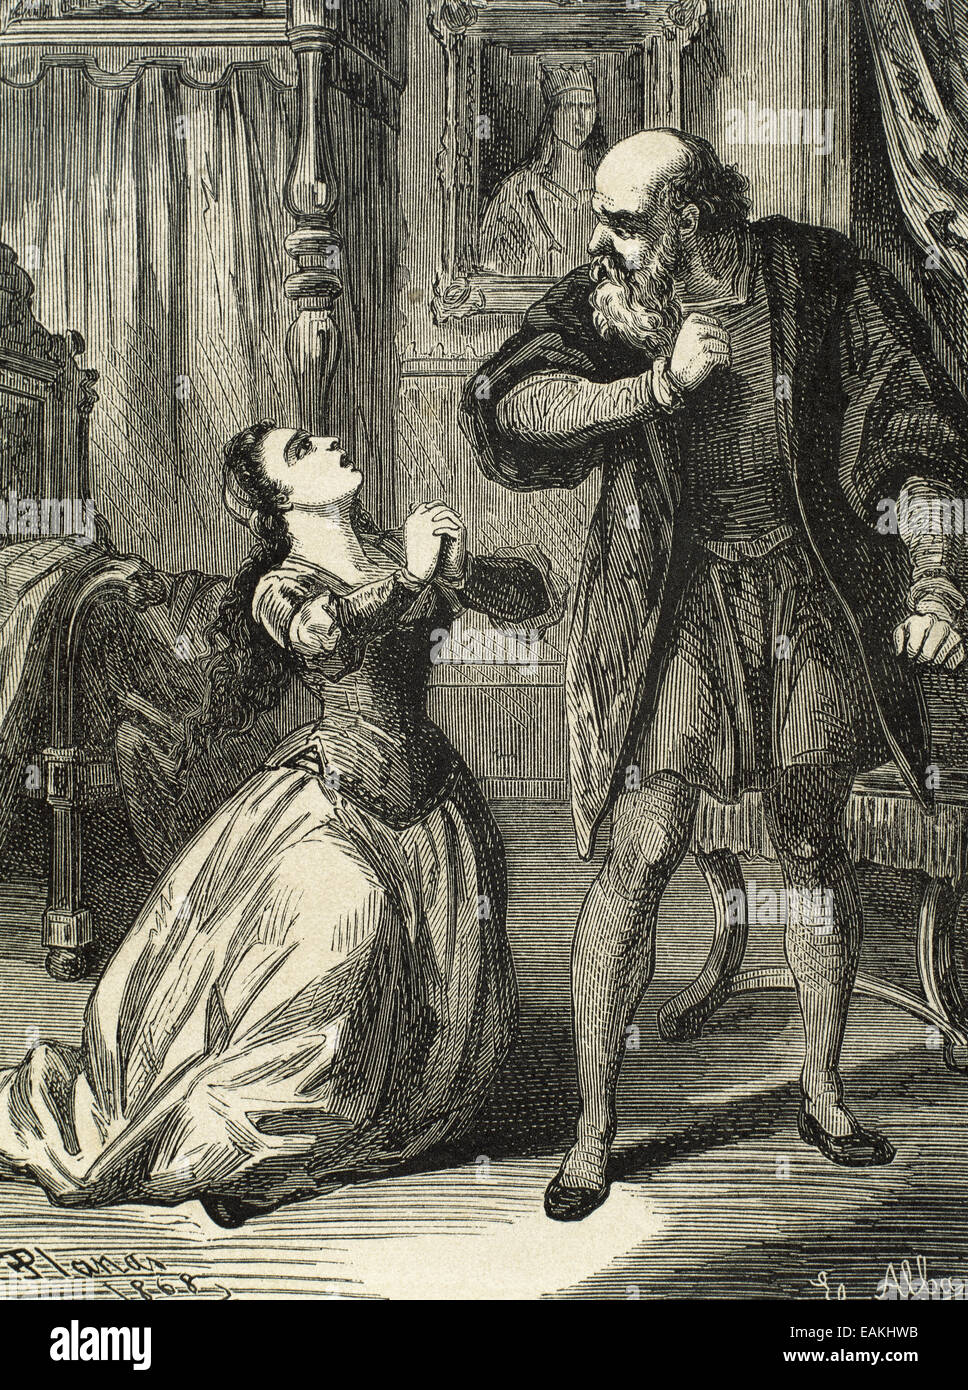 when did shakespeare write romeo and juliet But what is the play really about why did shakespeare write it you can read wikipedia to get a basic understanding of the play as you will find, there is a long history behind the play, and there are many variations of the story going back in time.